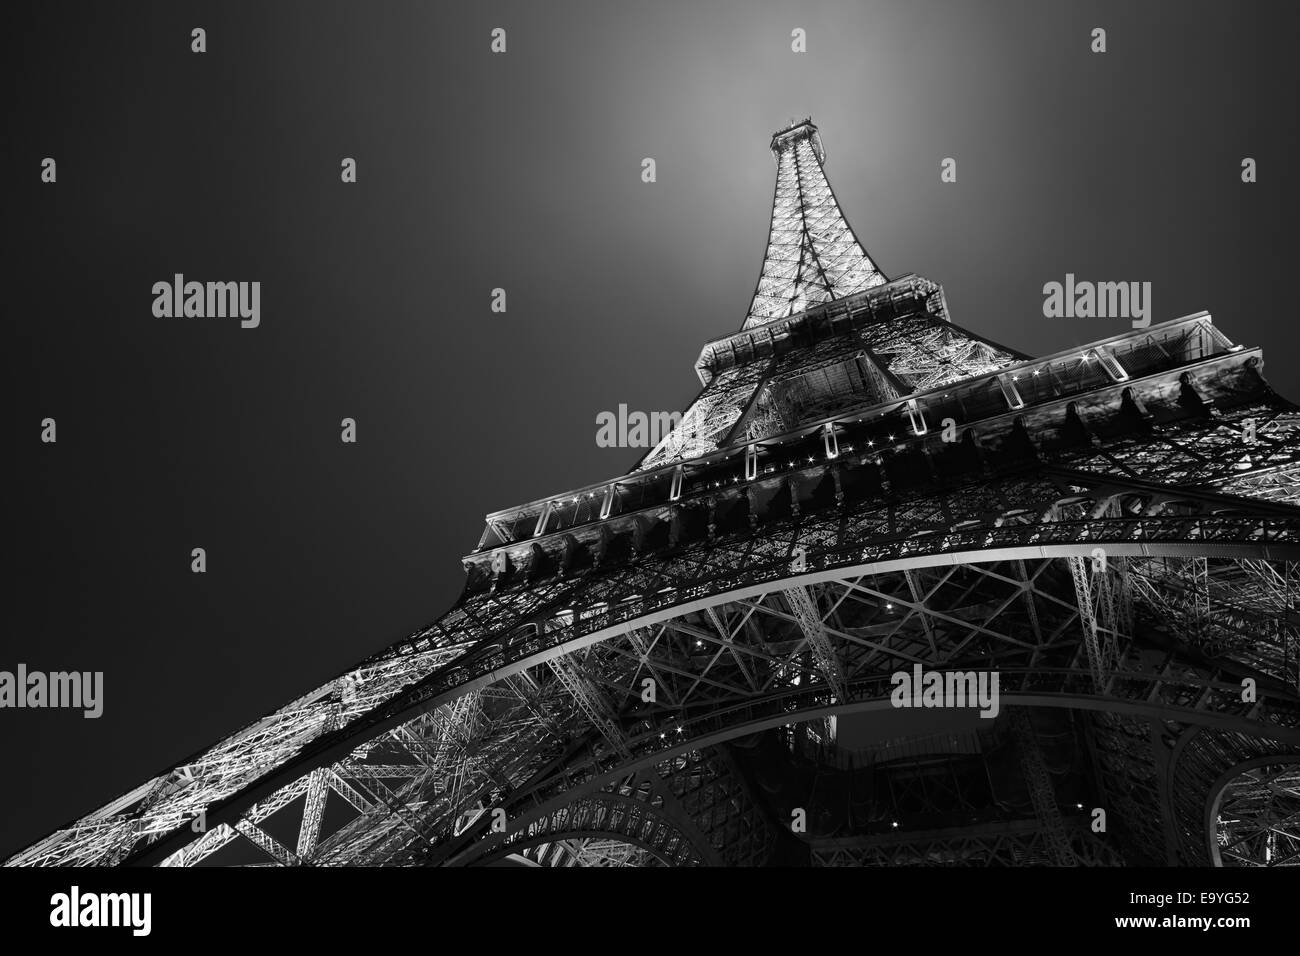 Tour Eiffel à Paris de nuit, noir et blanc, low angle view Photo Stock